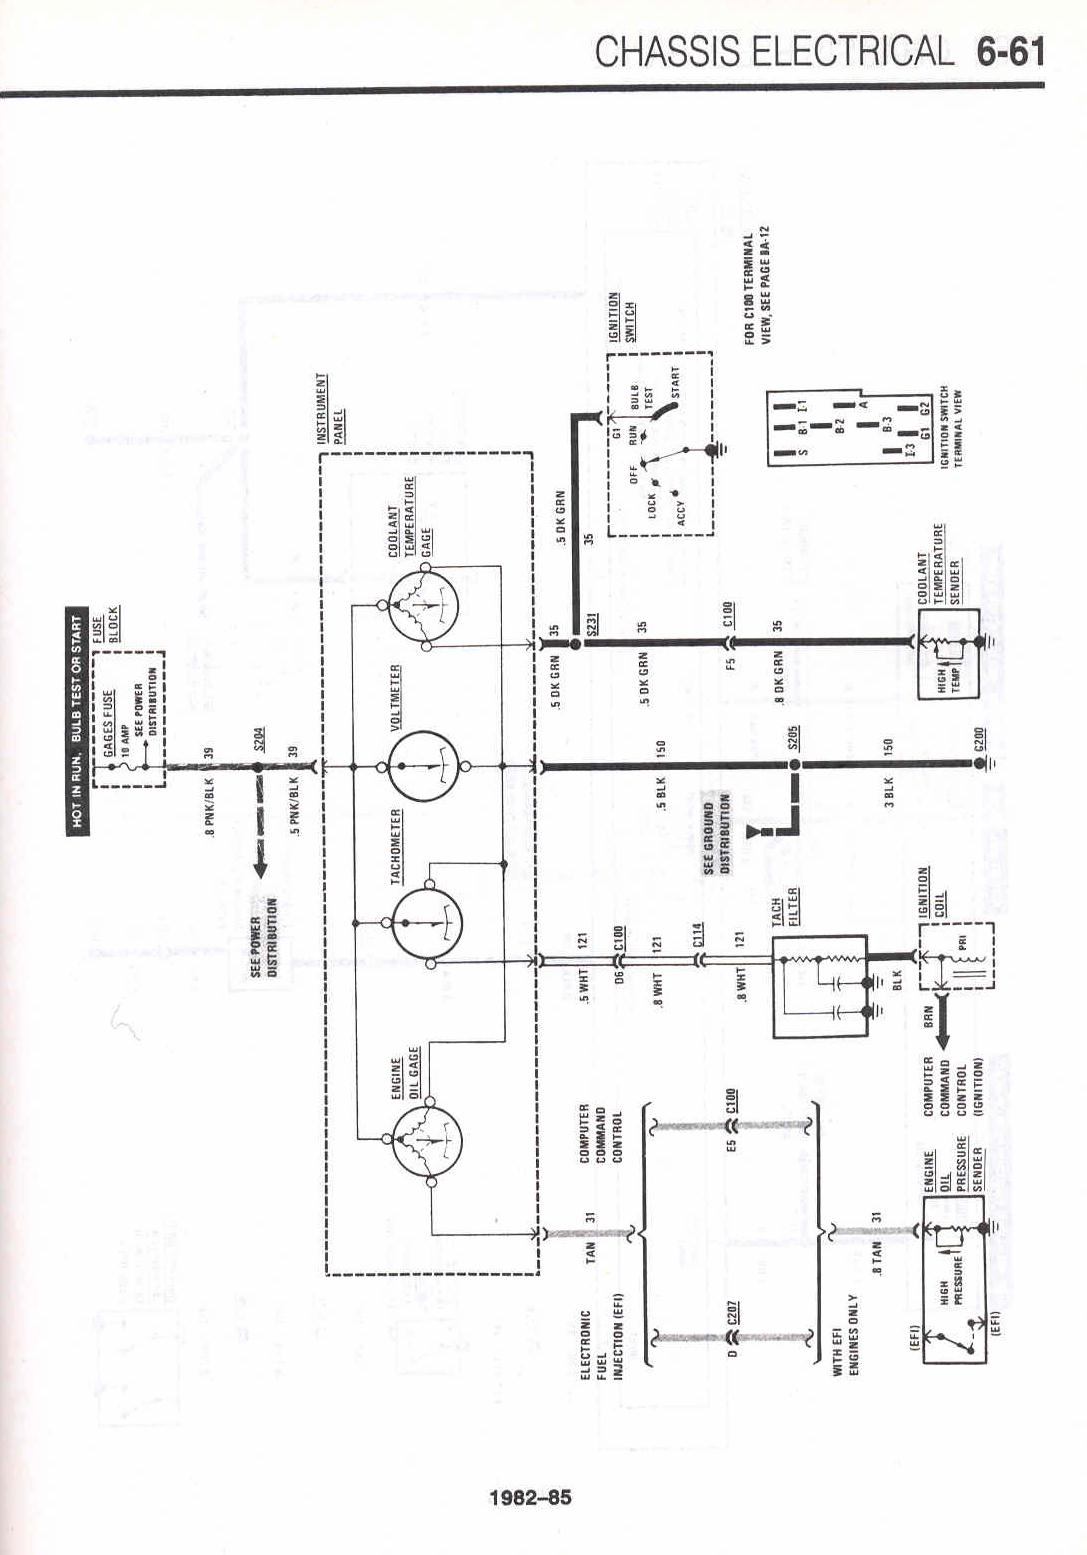 85 camaro distributor wiring diagram [diagram] 78 camaro v8 engine wiring diagram free full ... 85 camaro fuse box diagram